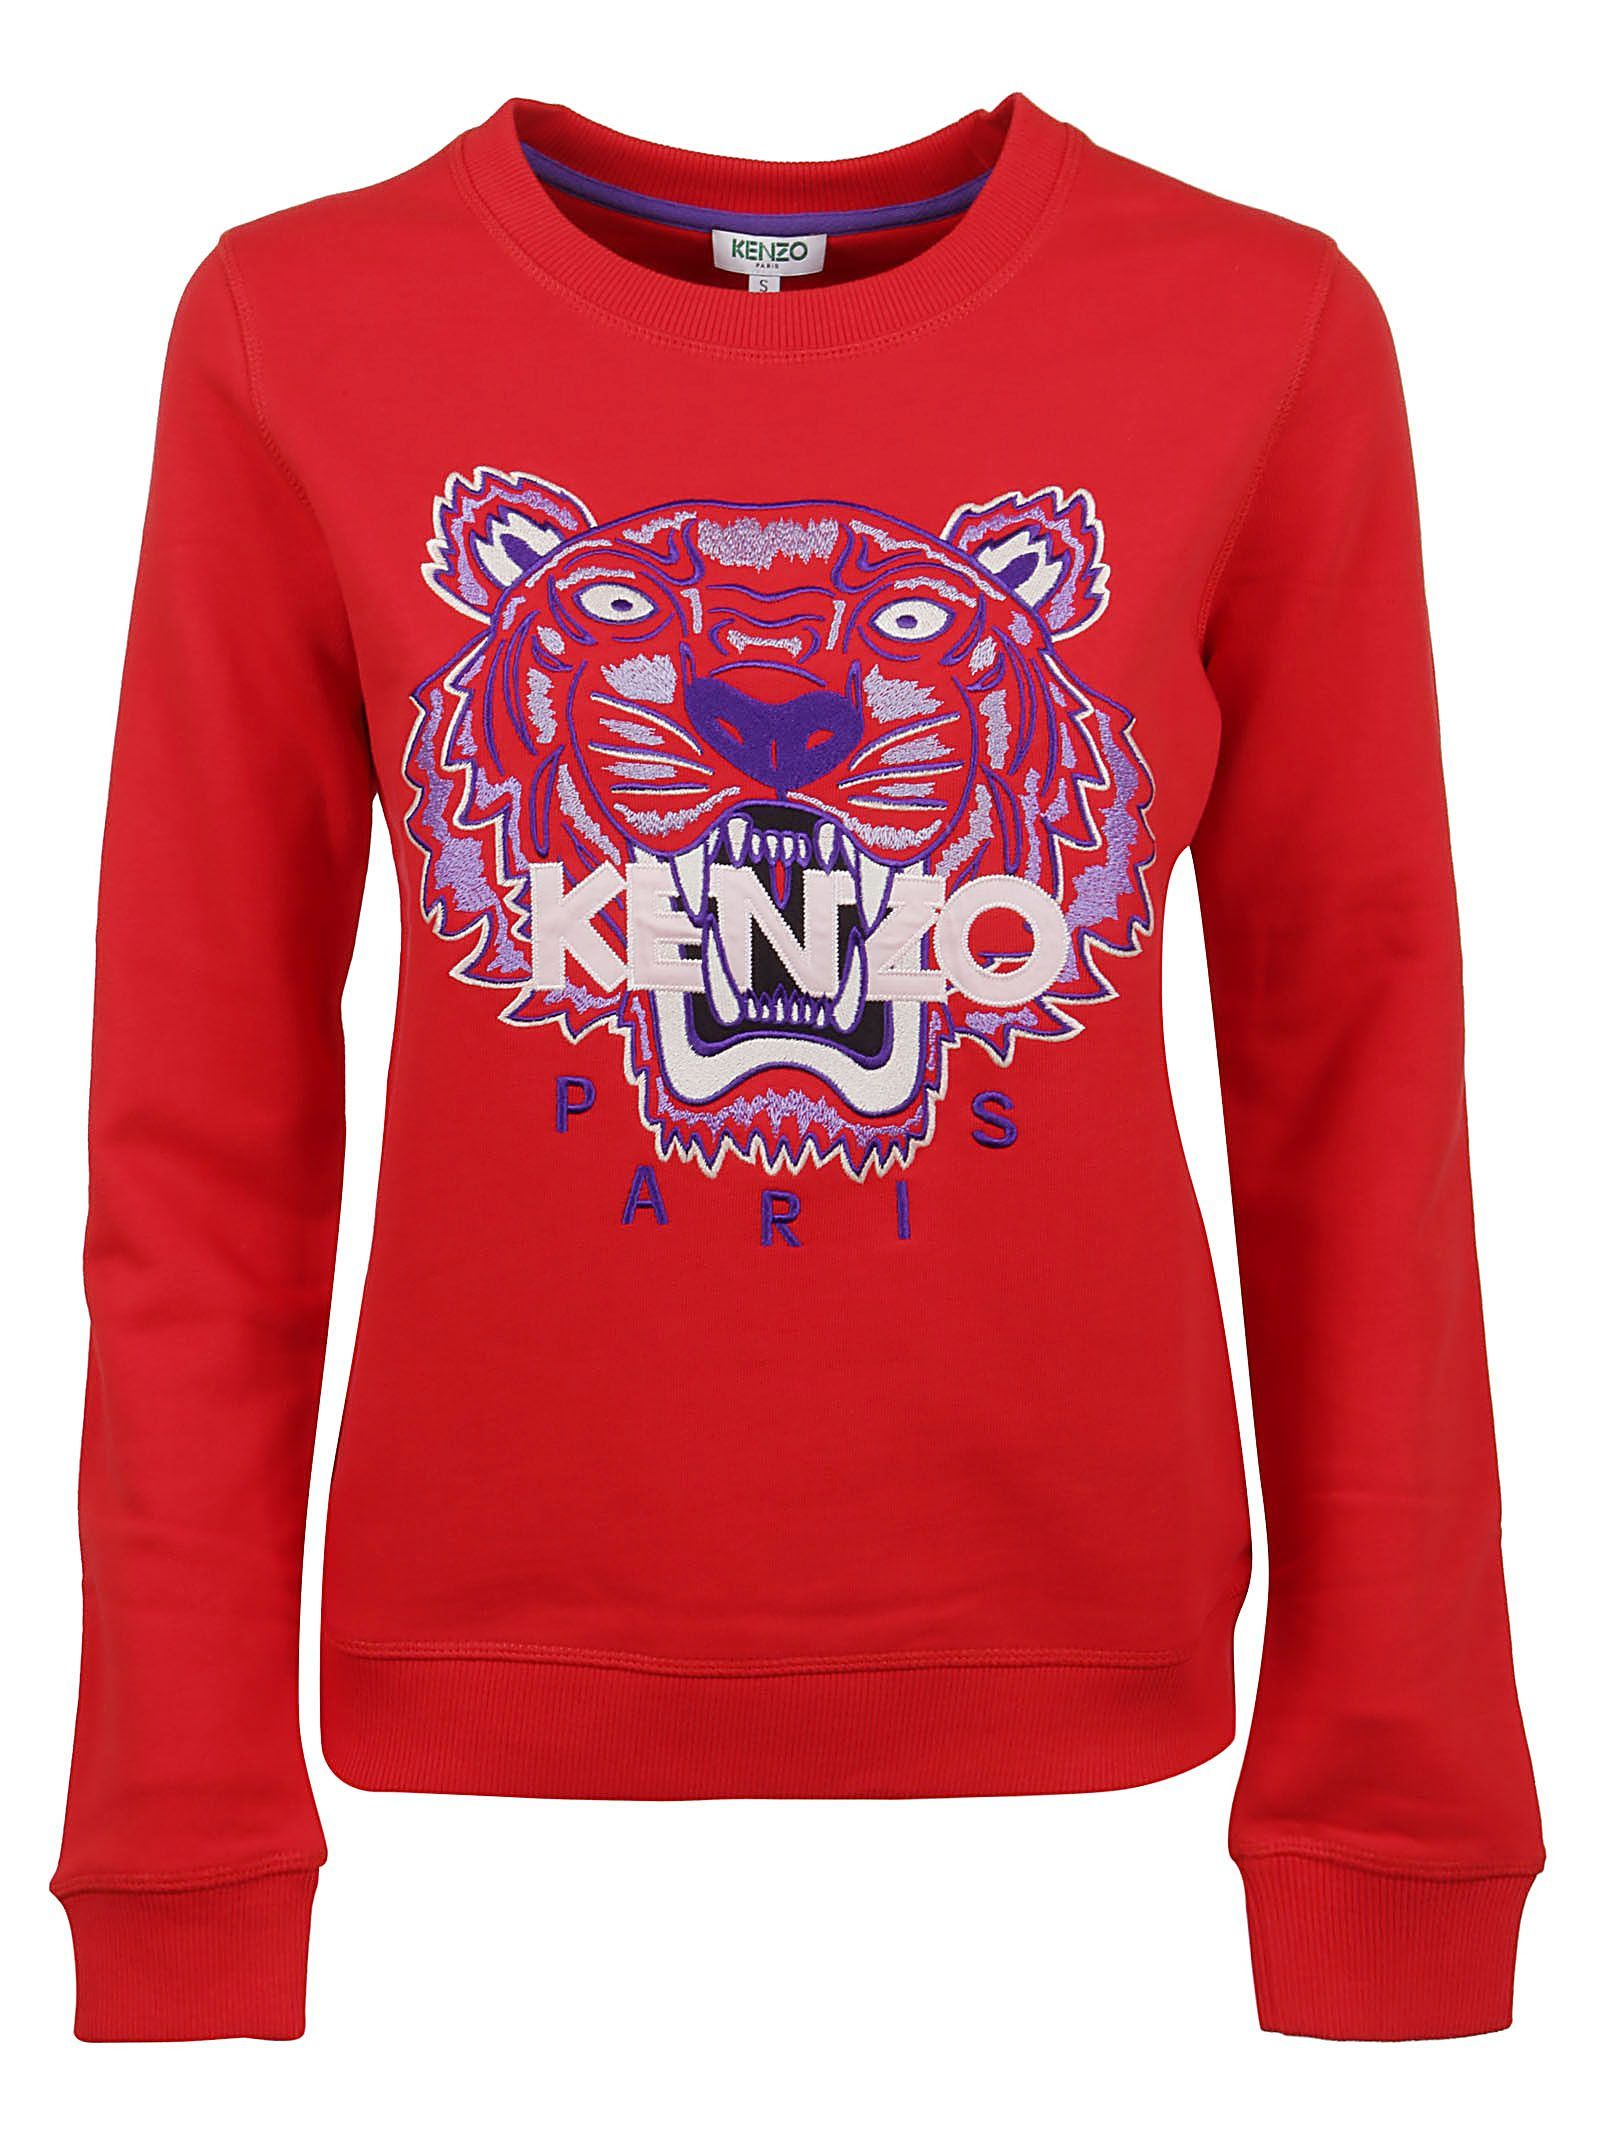 KENZO WOMEN'S FA52SW7054XA21 RED COTTON SWEATSHIRT